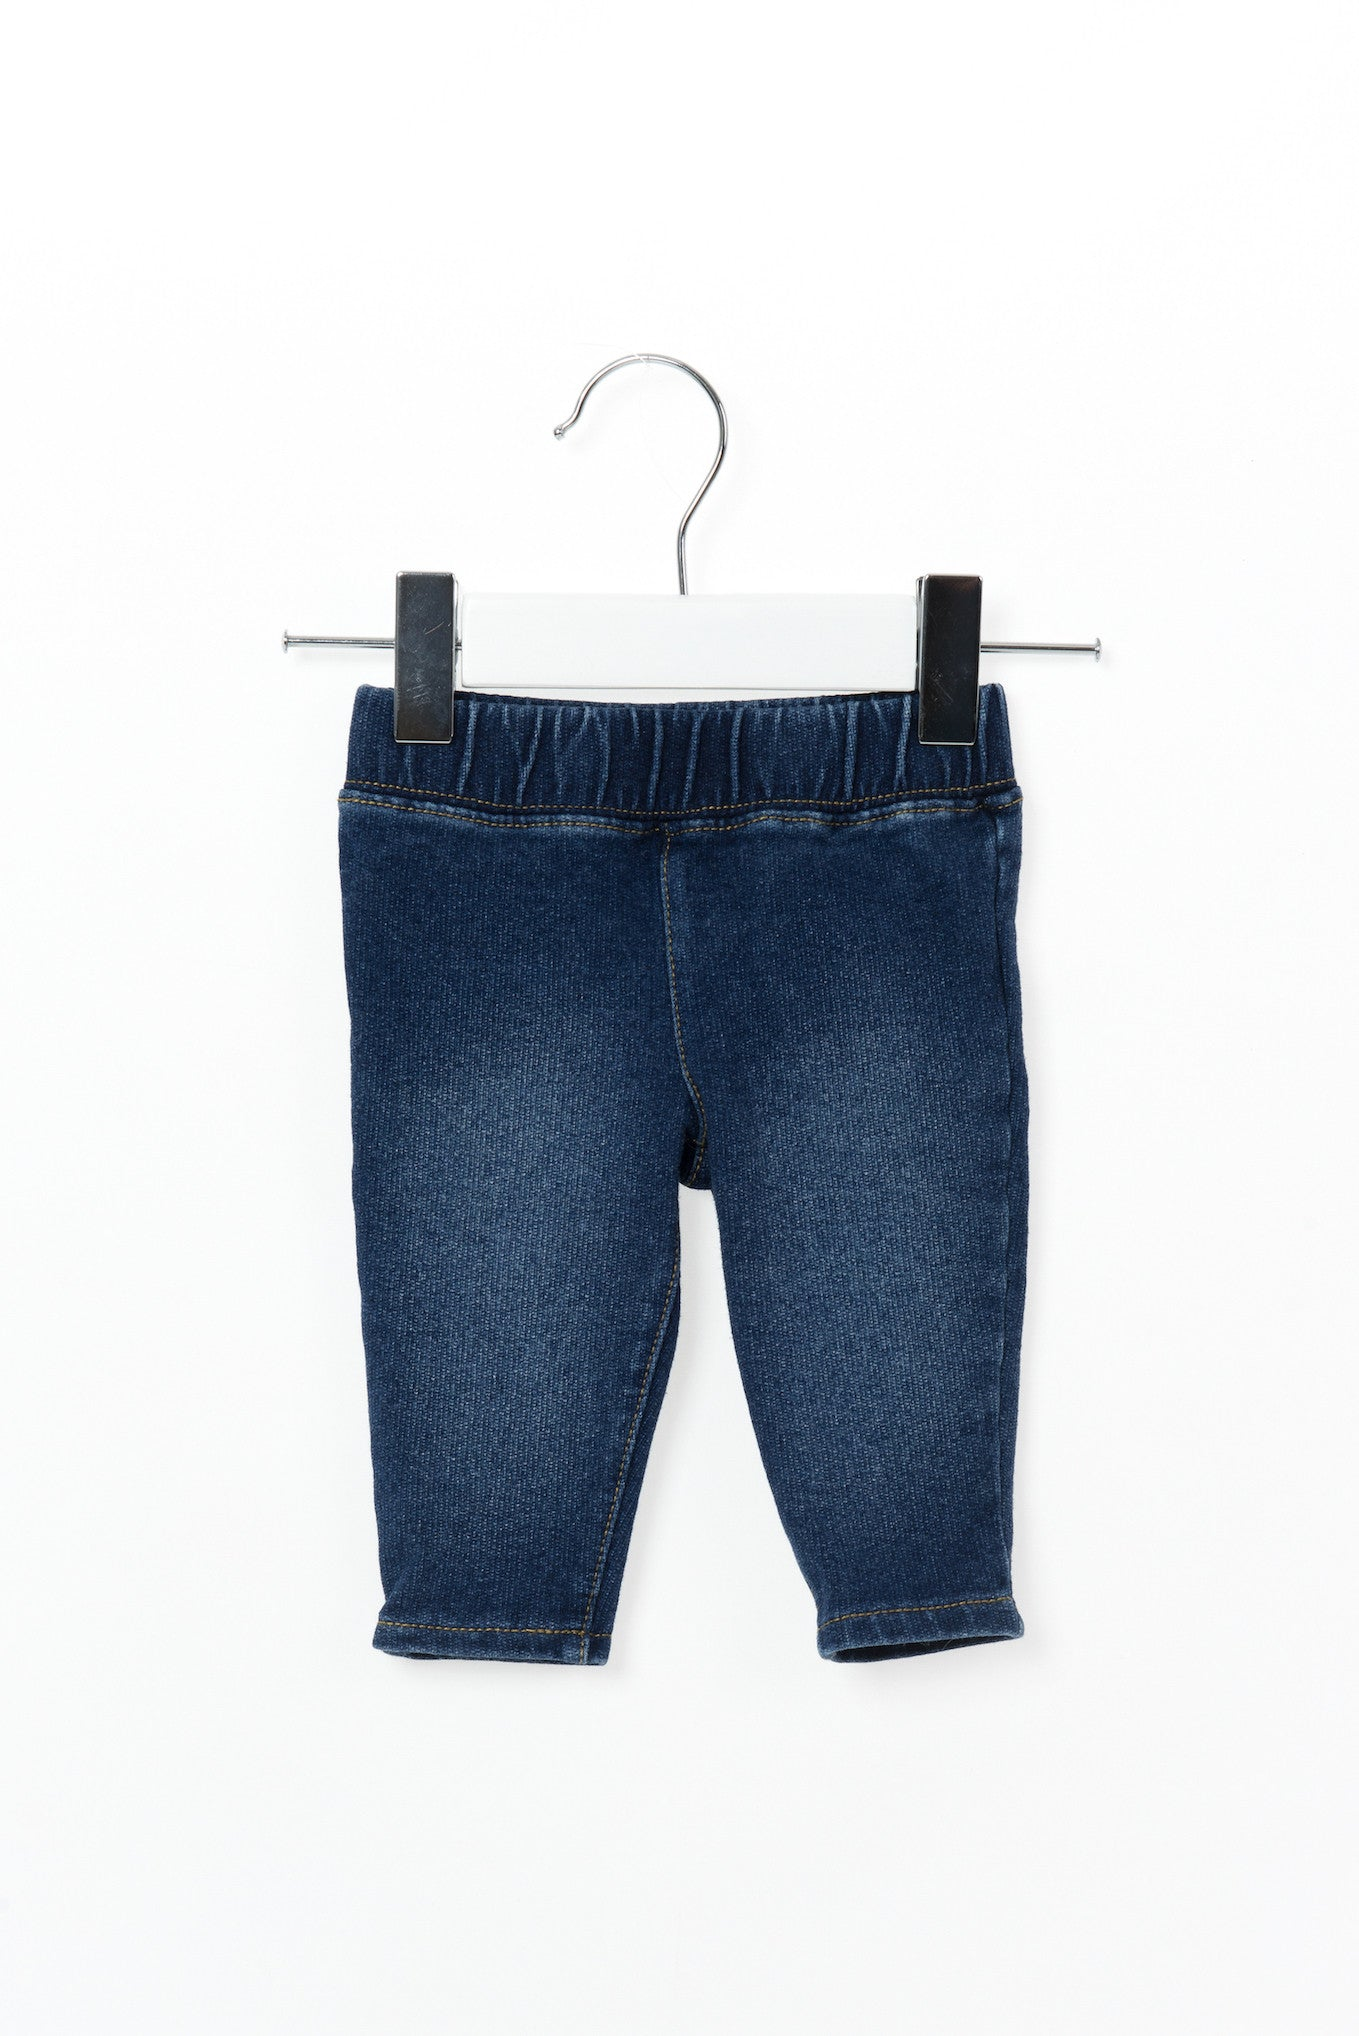 10001319 Ralph Lauren Baby~Jeans 3-6M at Retykle